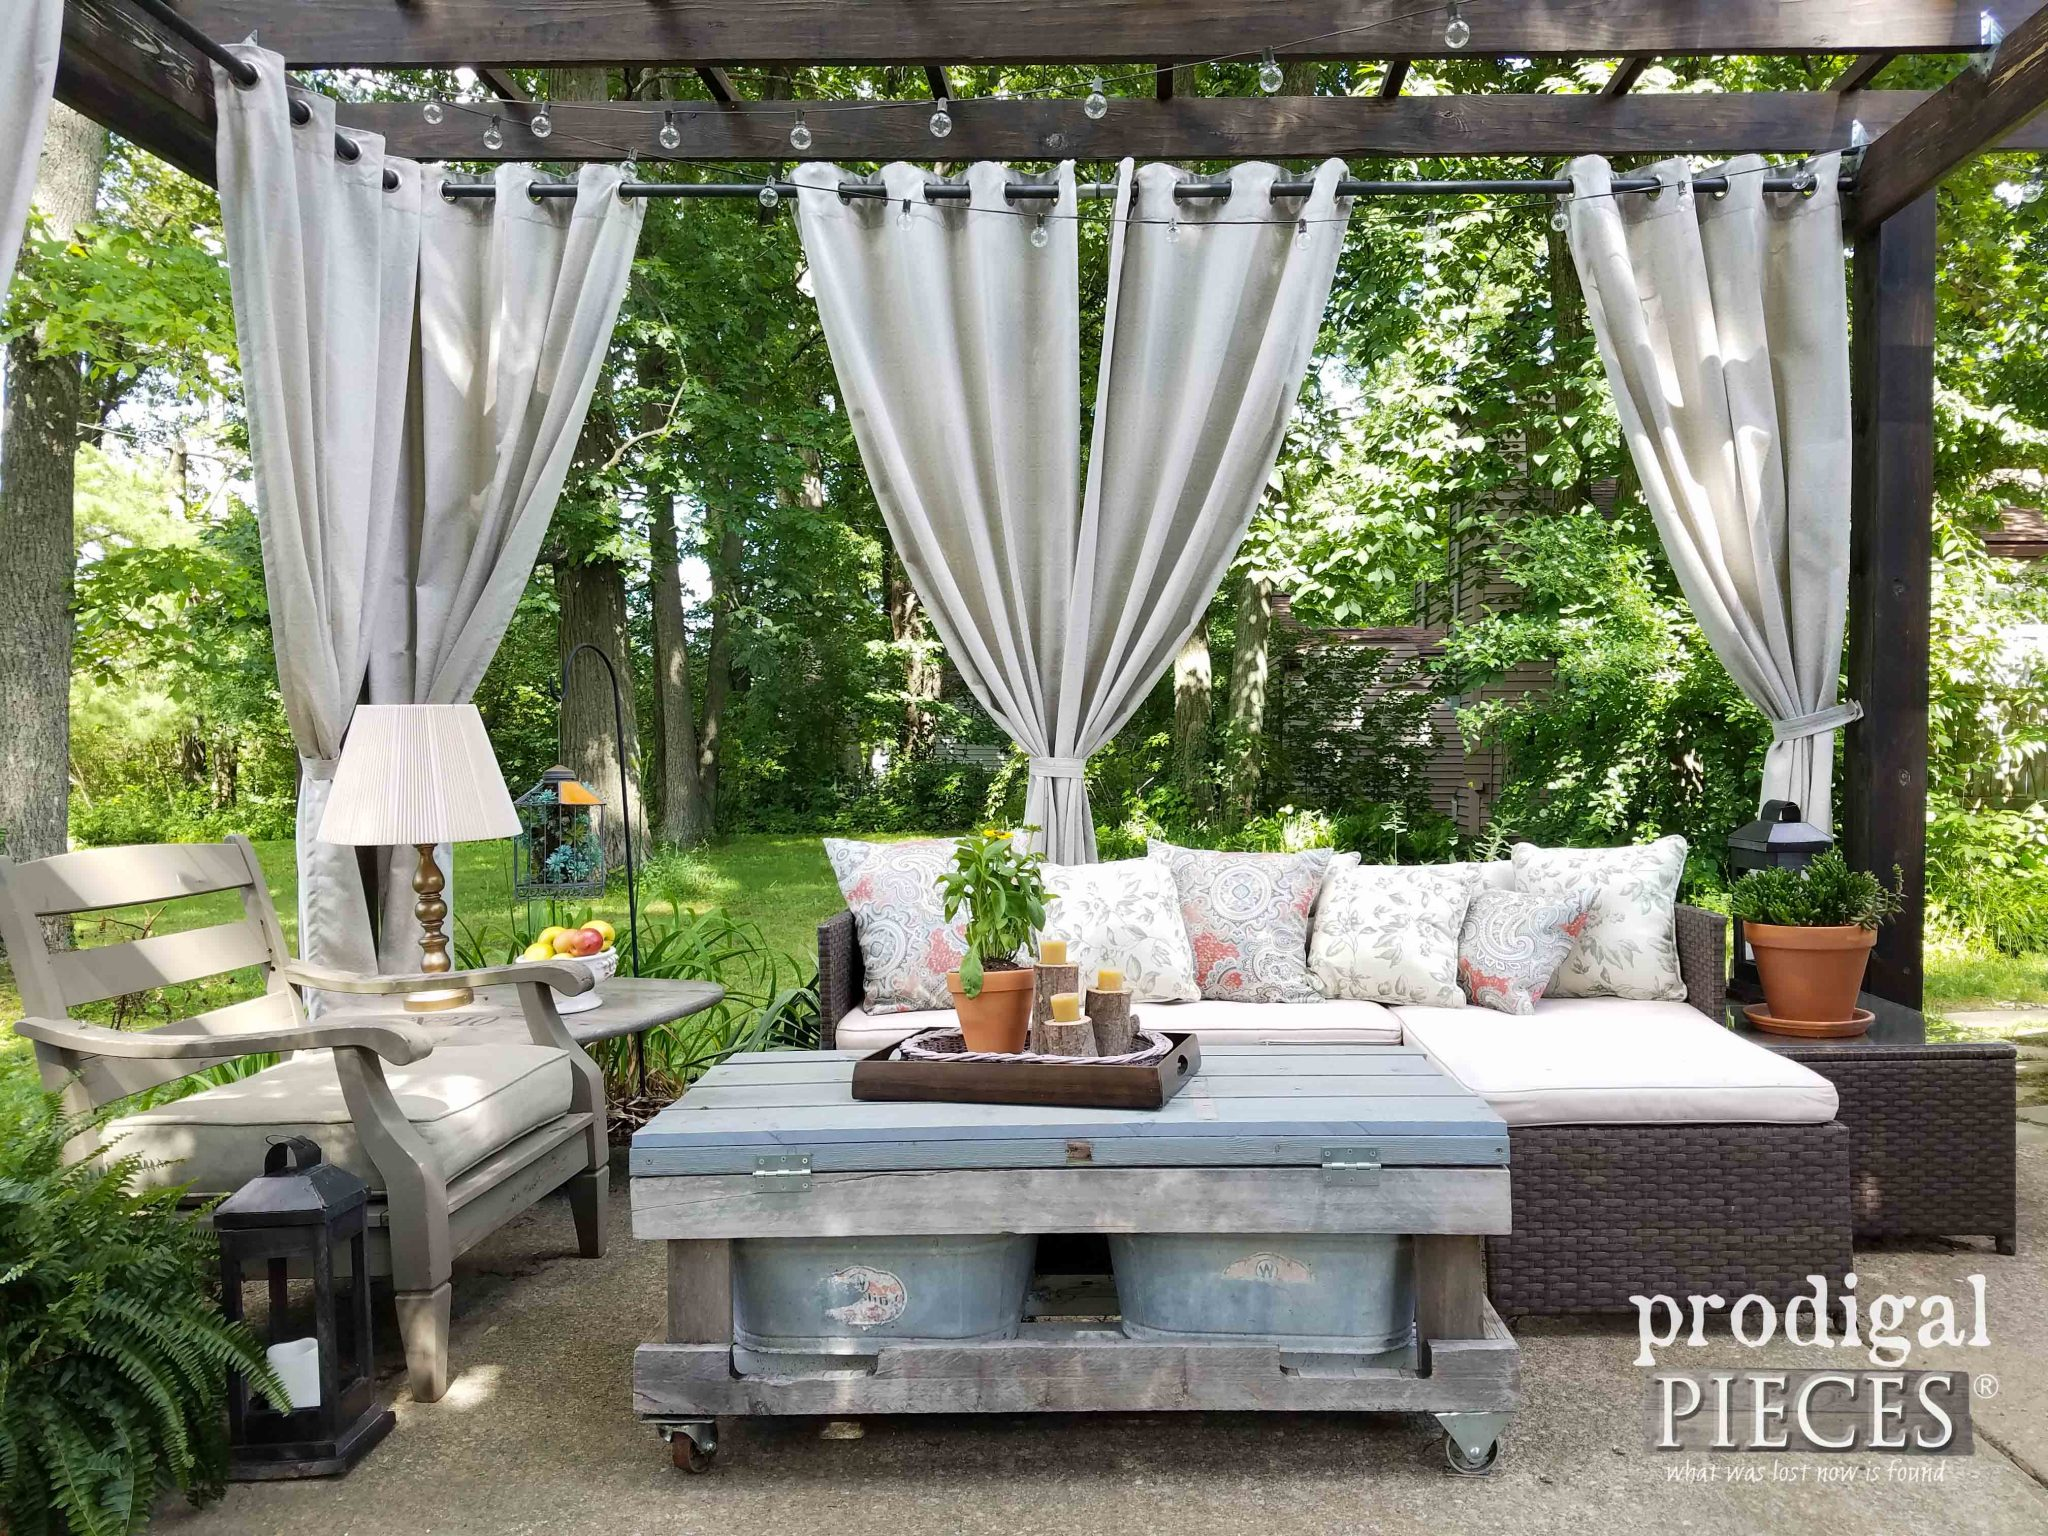 Patio Design with Repurposed and Reclaimed Materials by Prodigal Pieces | prodigalpieces.com